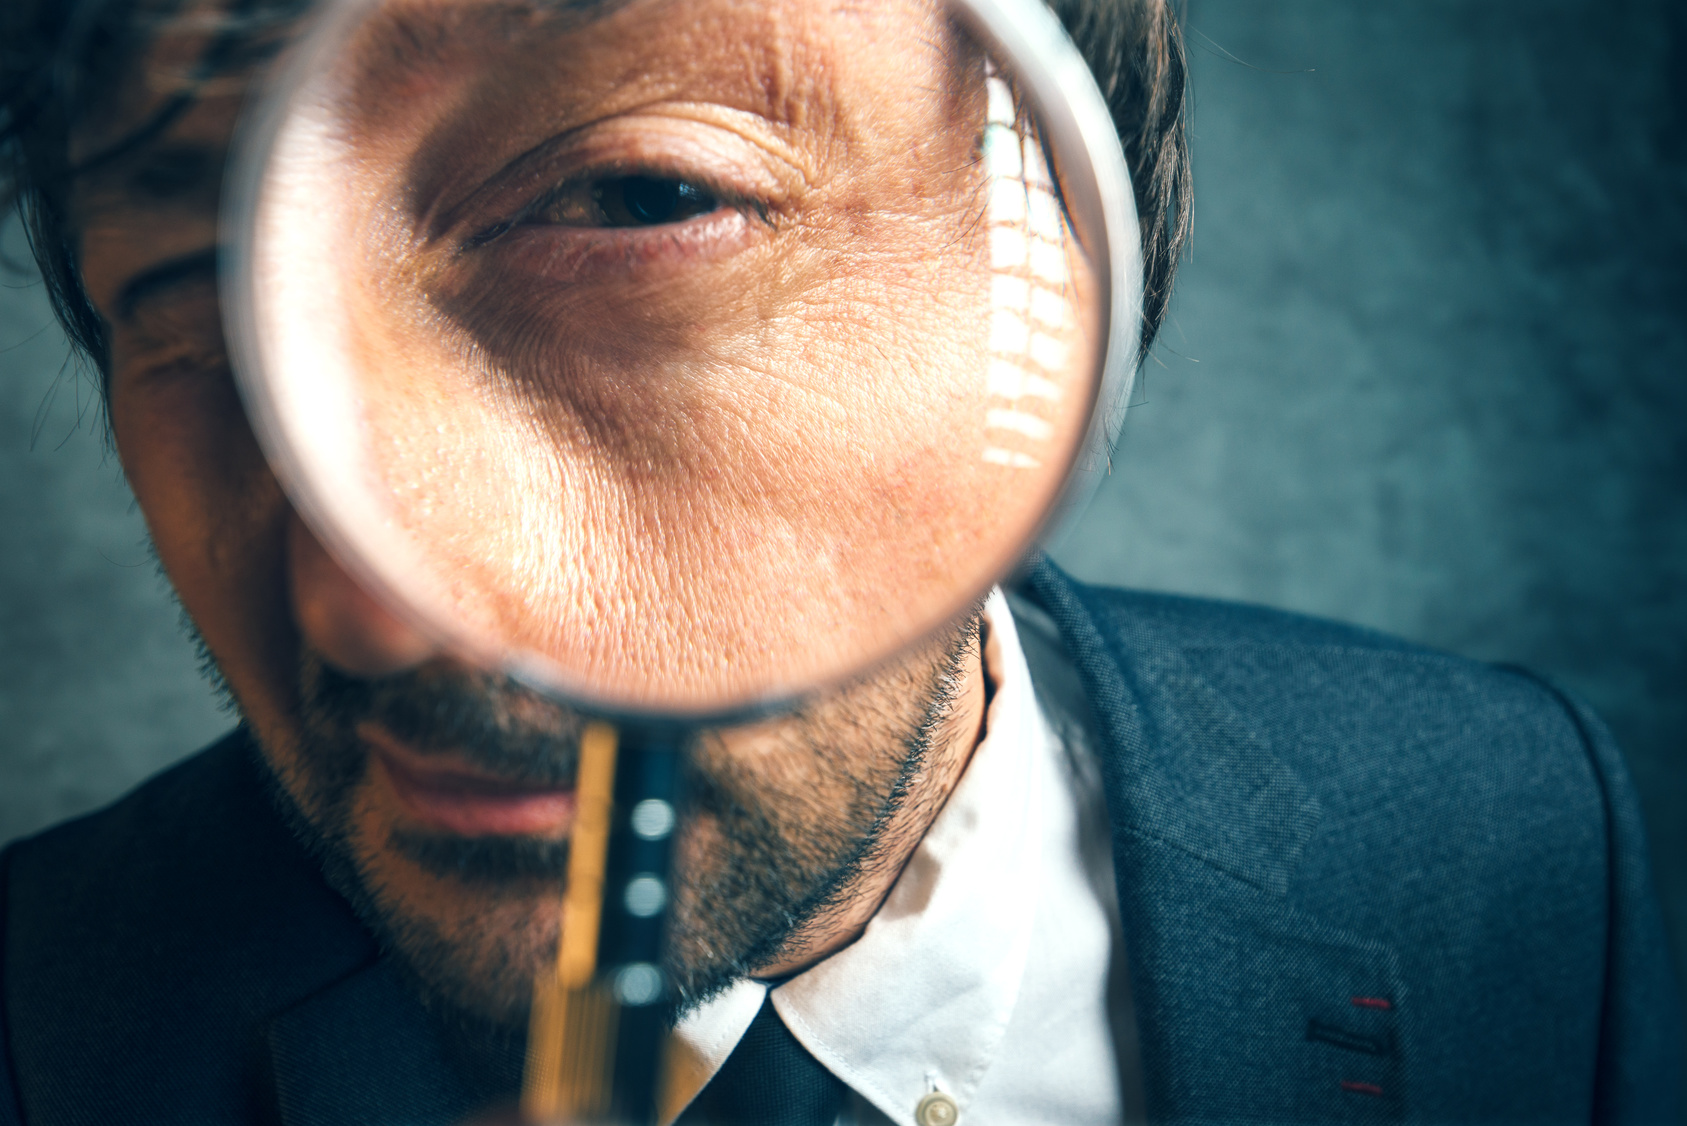 How To Improve Your Focus: 6 Tactics To Stay On Task